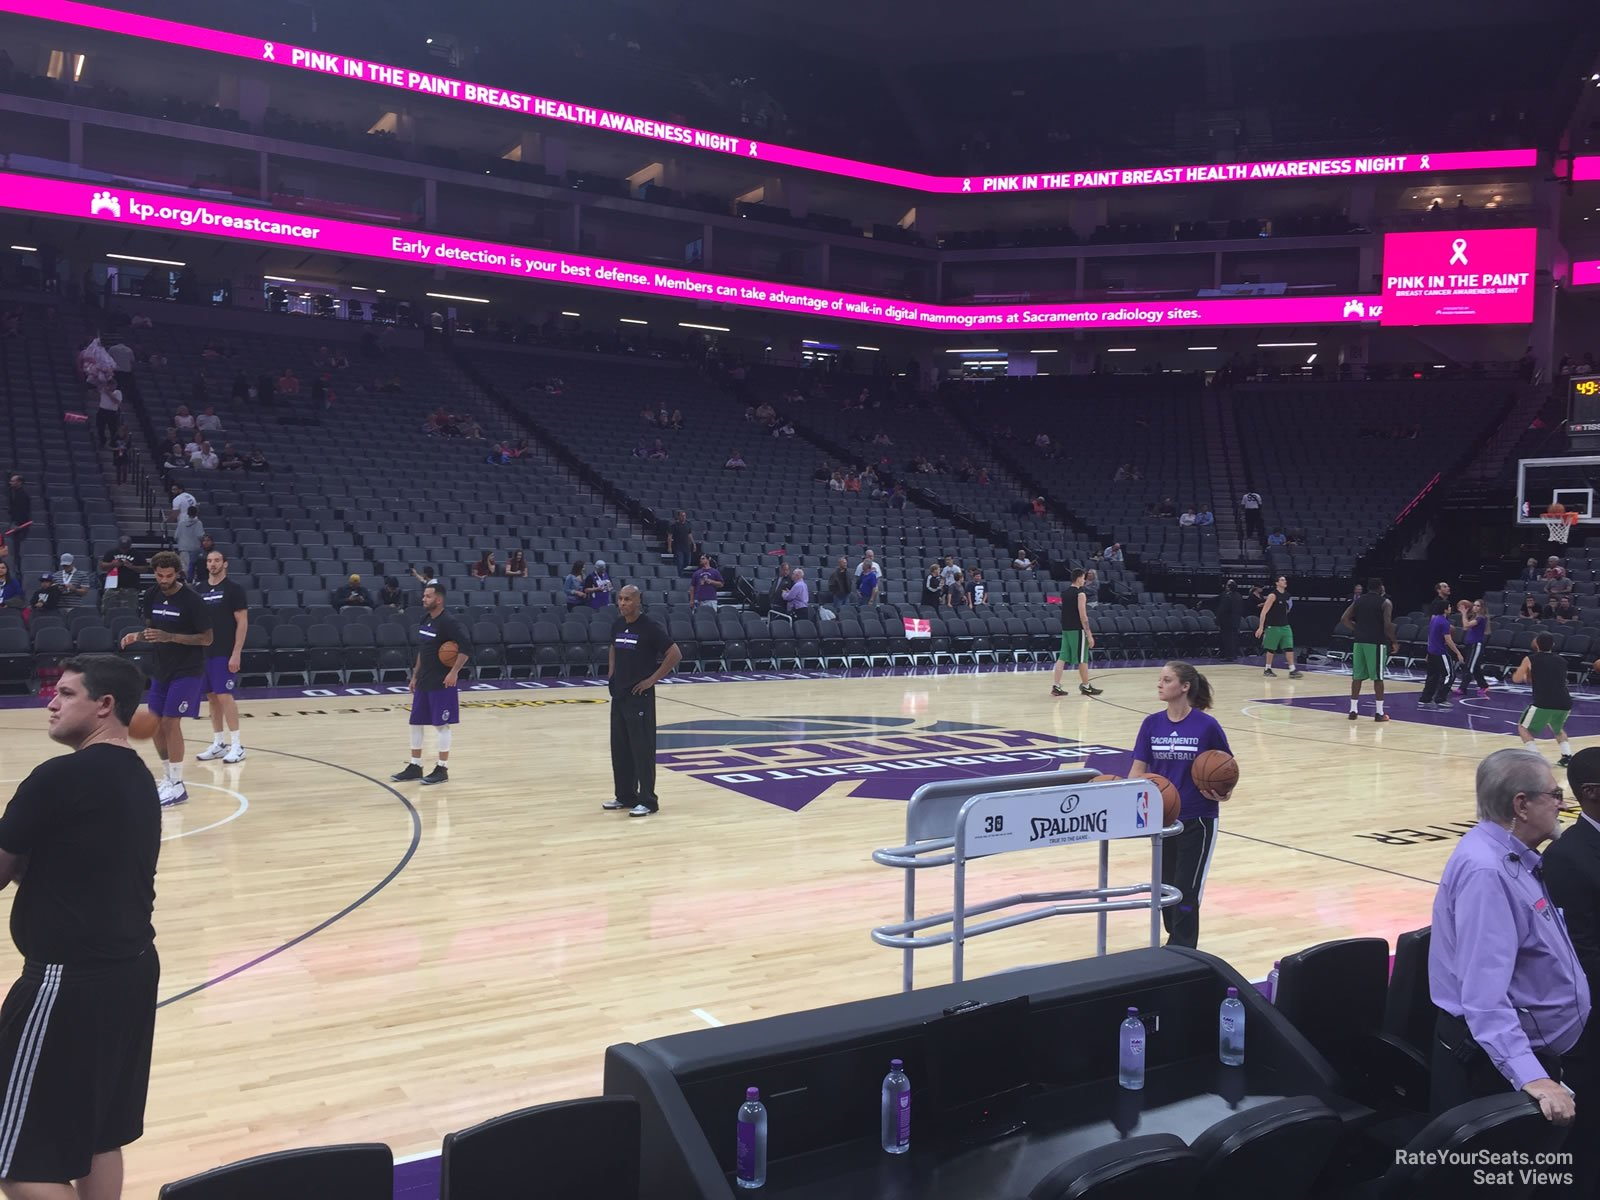 Courtside 3 seat view